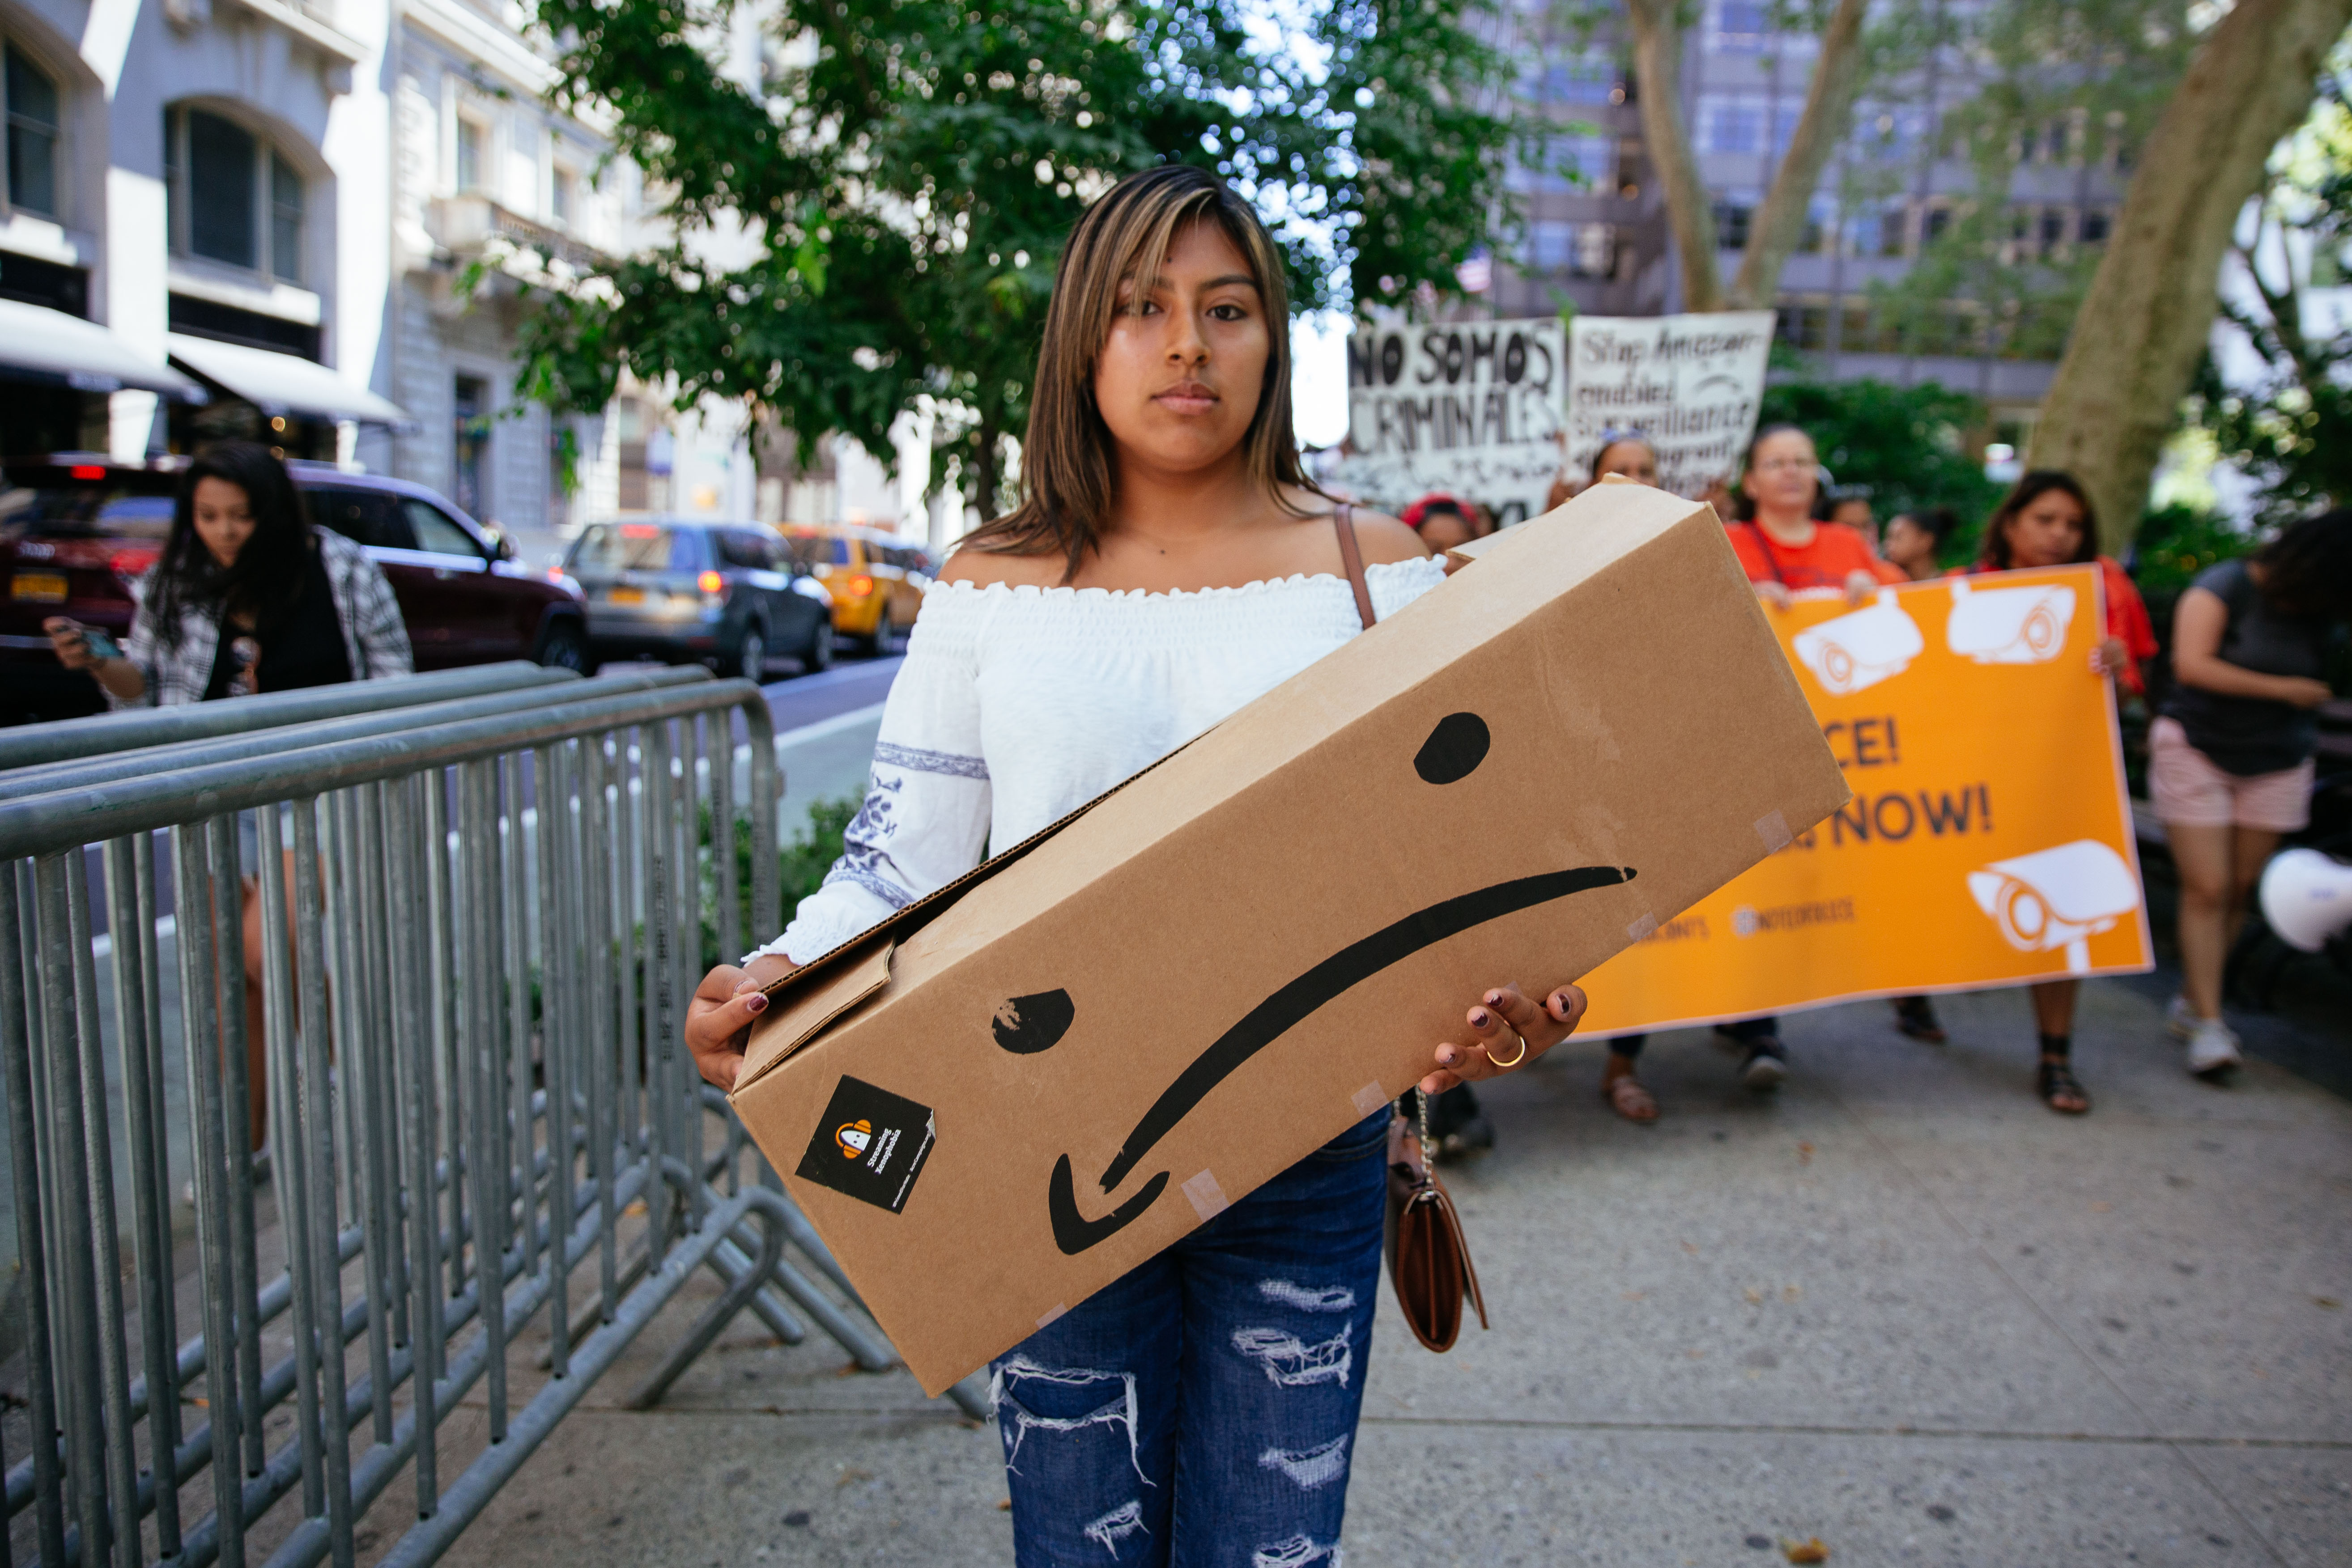 A protester holds an Amazon box made into a sad face as part of a protest against the company's cloud services contracts with Palantir, which supports ICE.